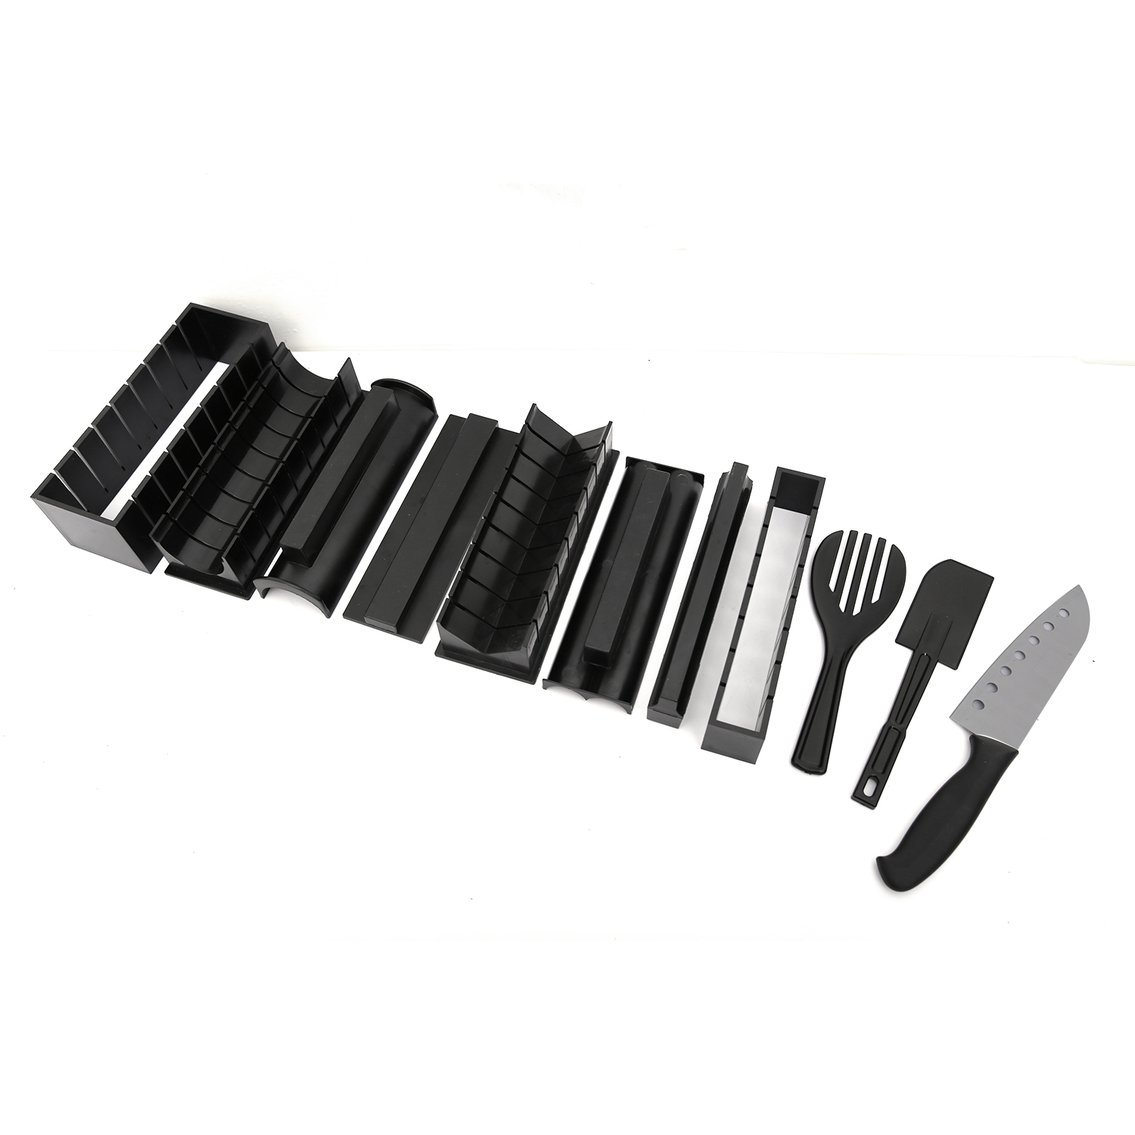 Mazur 11 PCs Pack Sushi Making Kit DIY Roll Sushi Maker Rice Mold Cutter Household Kitchen Gadgets Sushi Making Tools for Beginners(Color:Black)